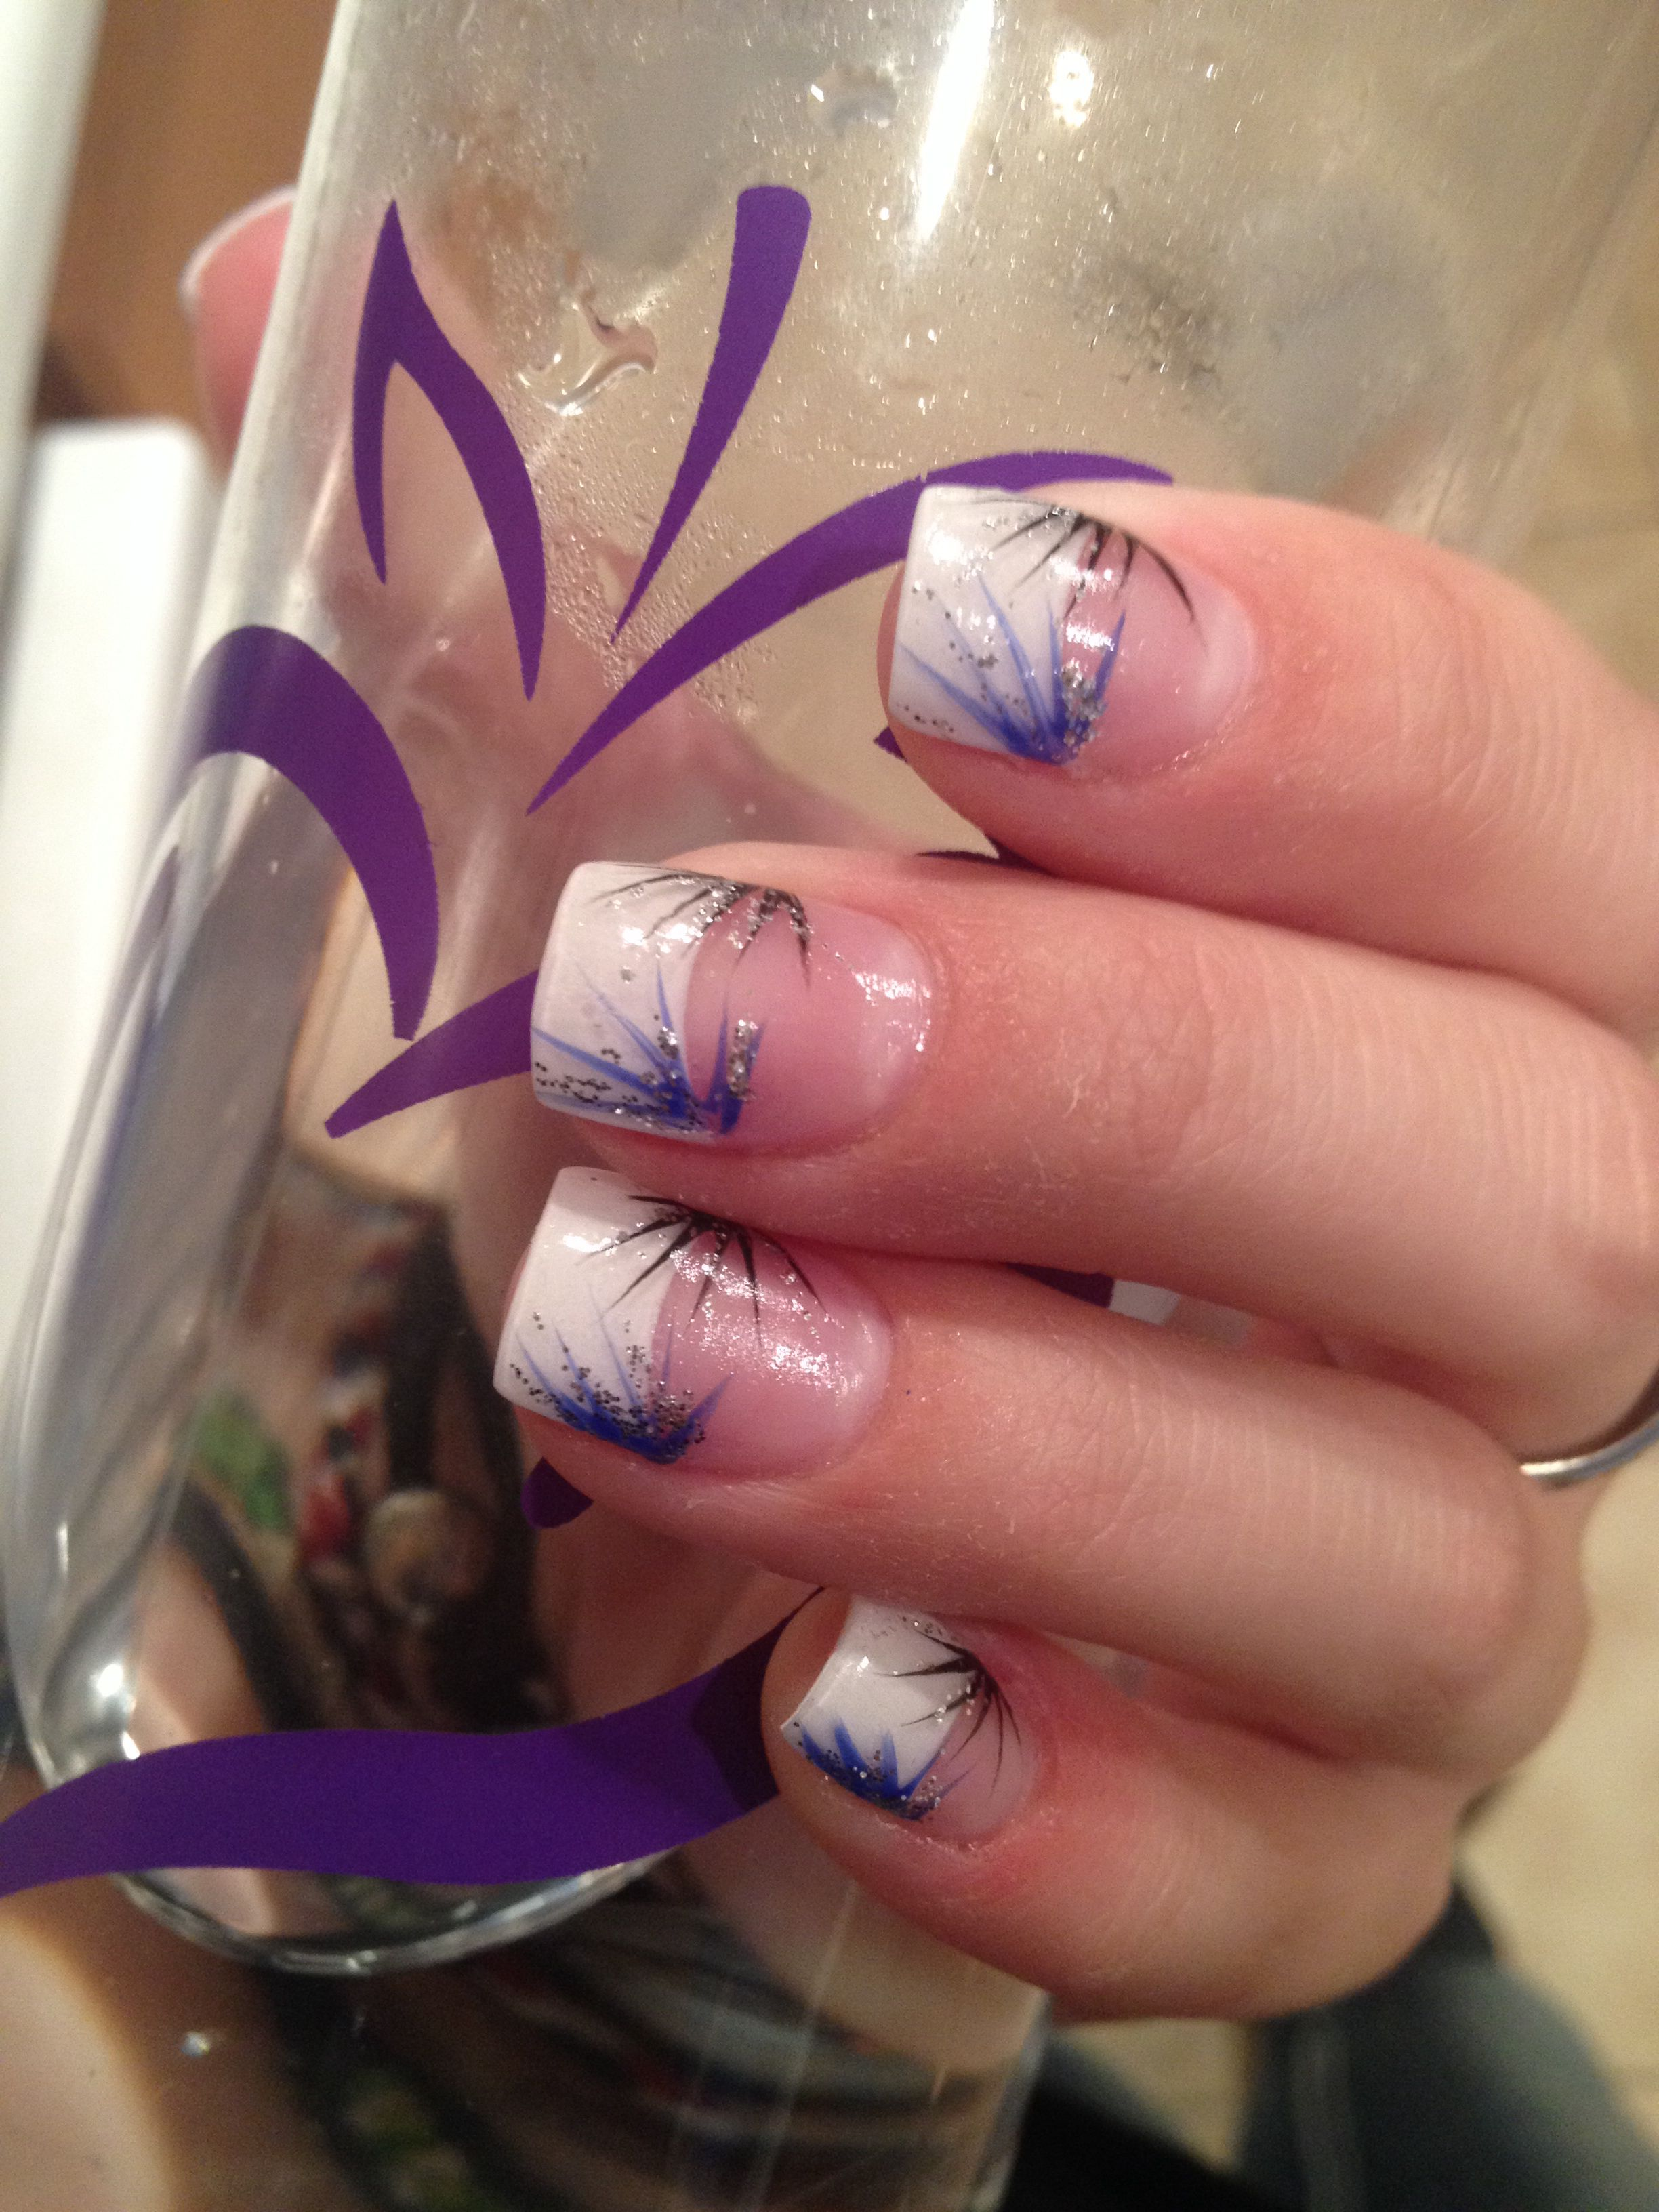 Prom Nails White Tips With Blue Sparkly Design The Berry Water